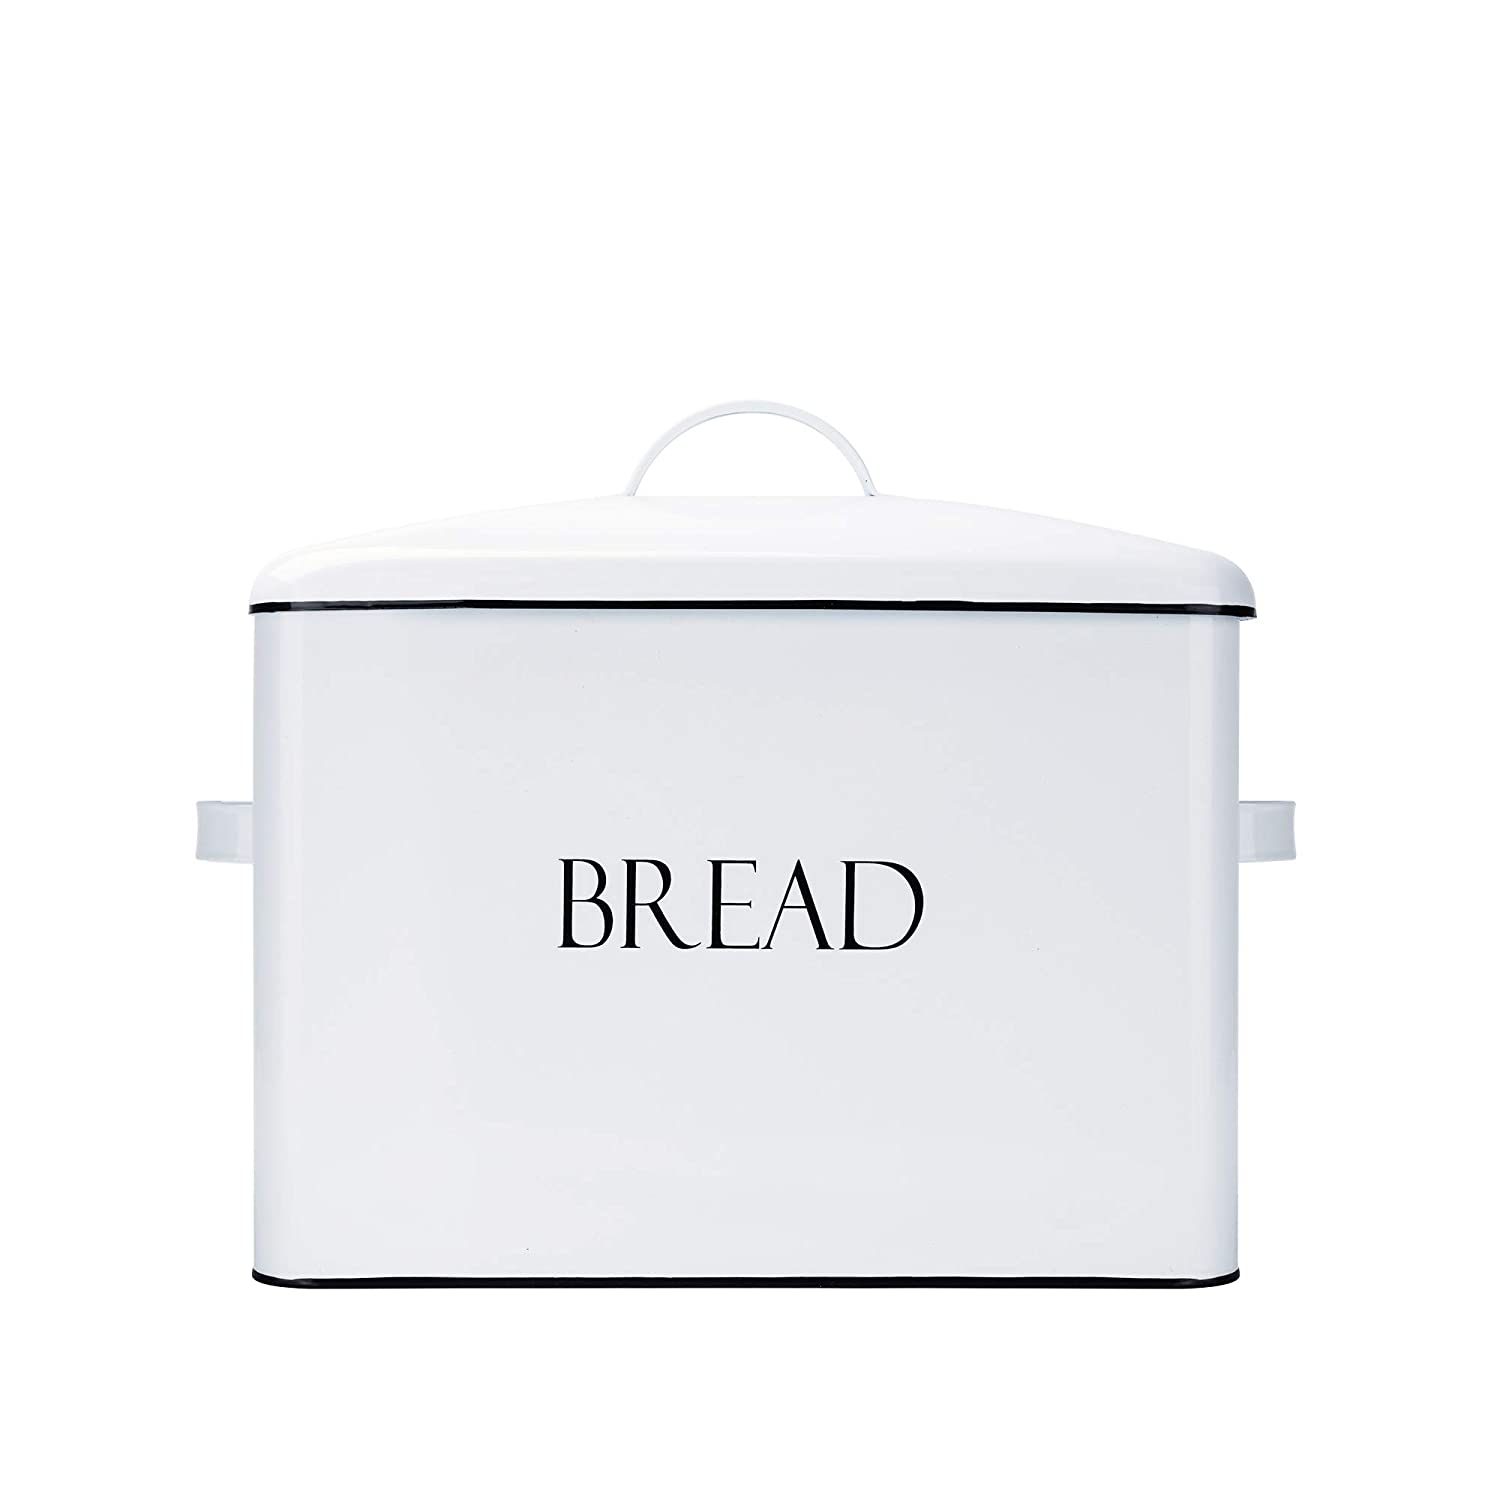 "Vintage Metal Bread Bin - Countertop Space-Saving, Extra Large, High Capacity Bread Storage Box for your Kitchen - Holds 2 Loaves 13"" x 10"" x 7""- White with BREAD Lettering"